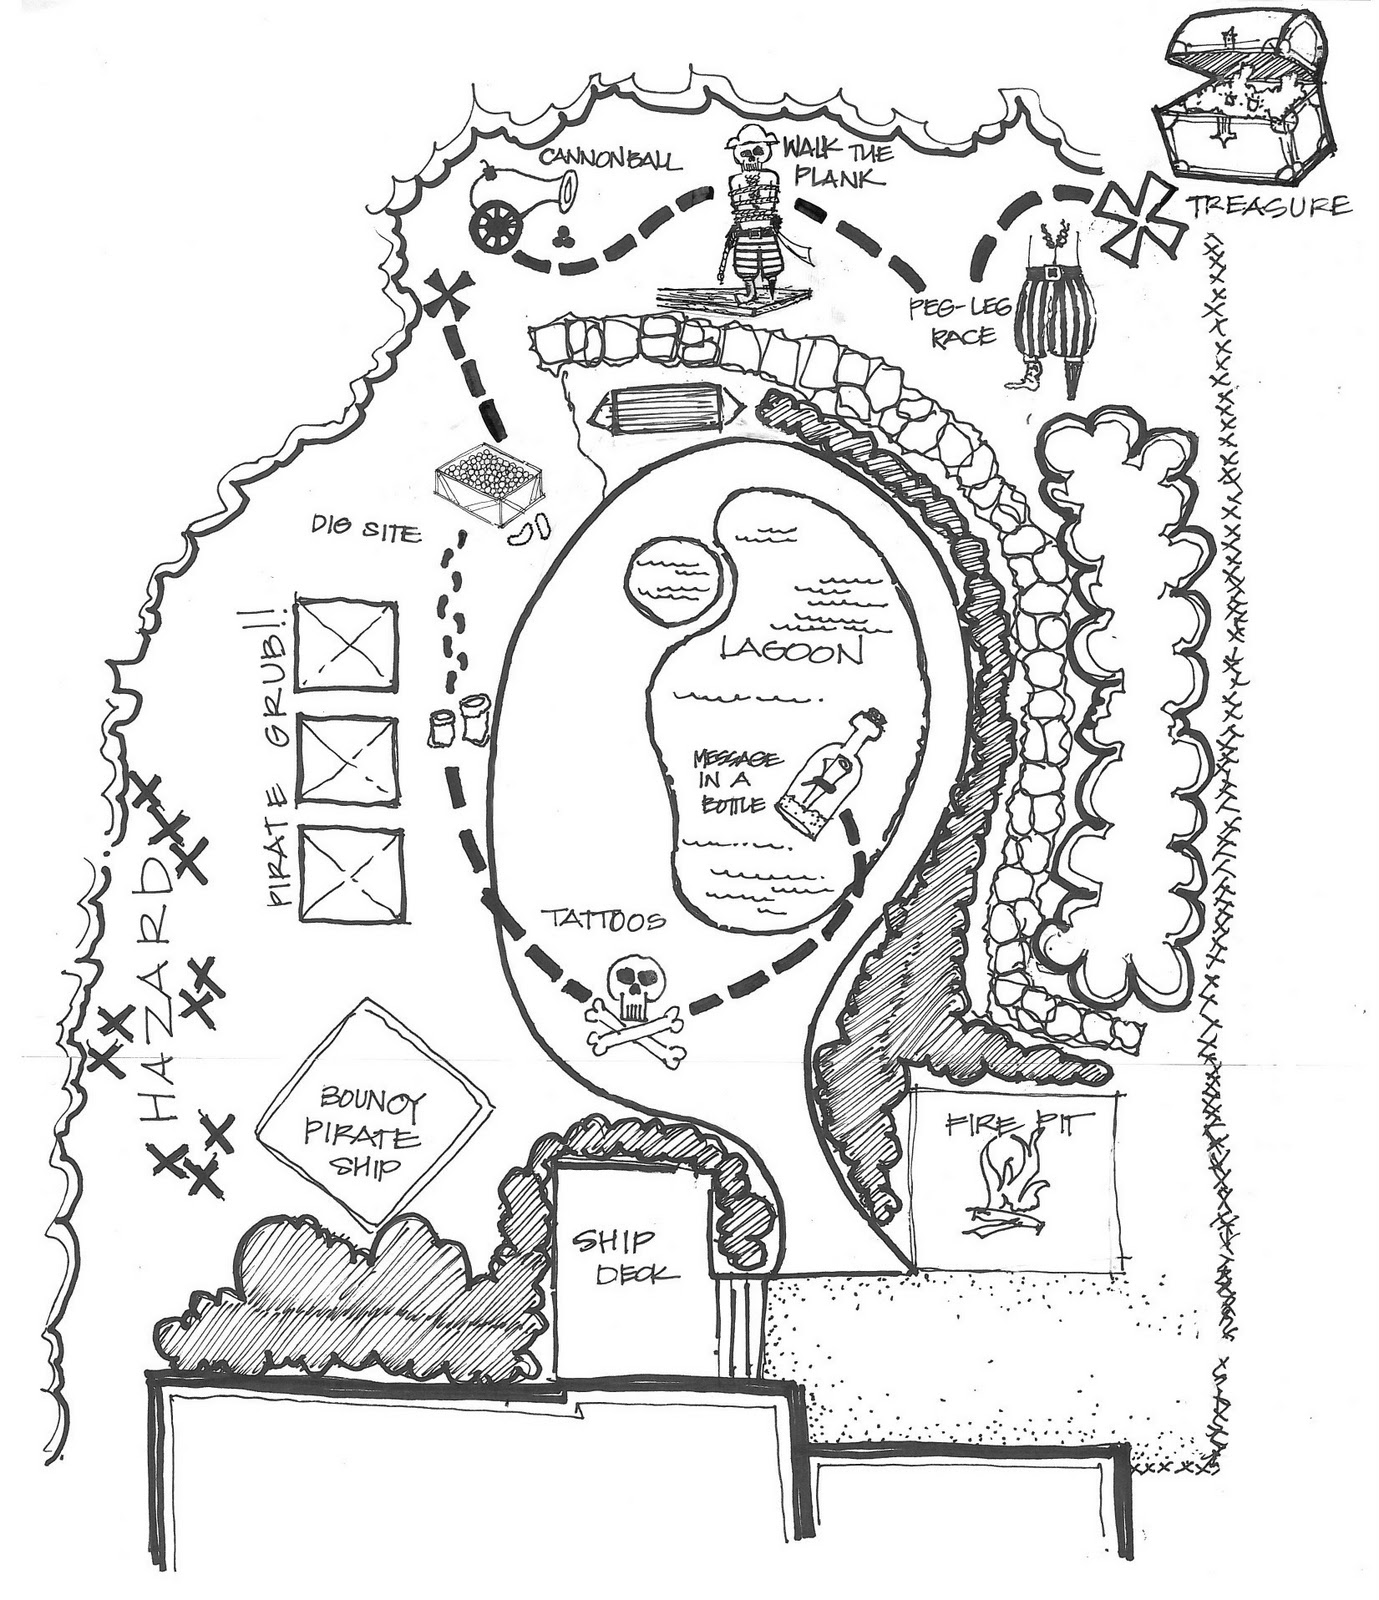 Pirate Map Drawing at GetDrawings.com | Free for personal use Pirate ...